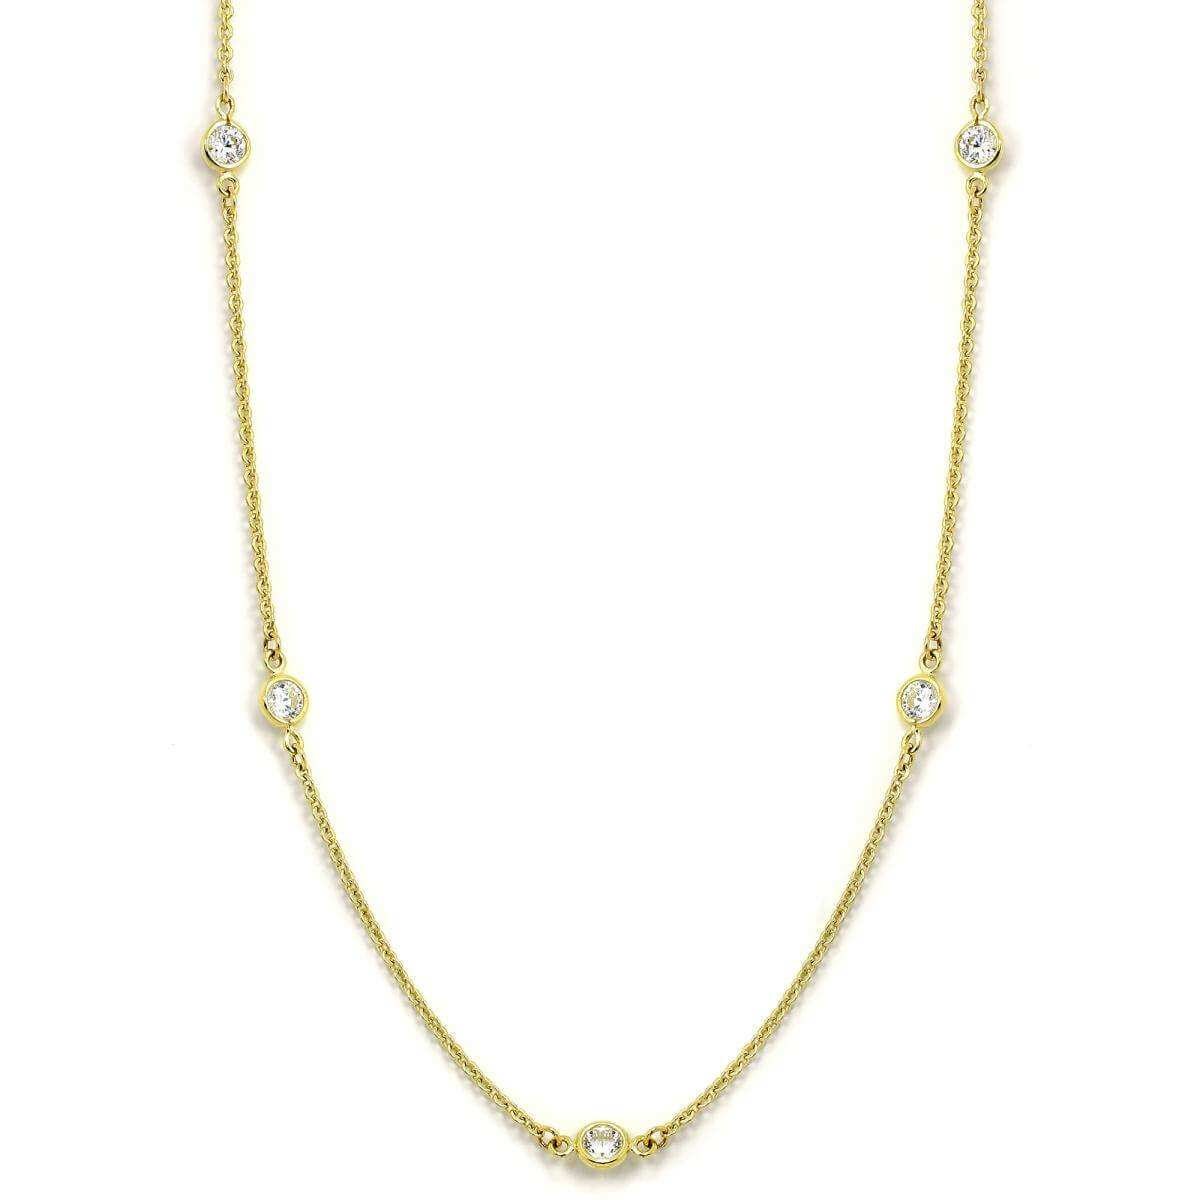 9ct Gold & CZ Crystal Fine Belcher Chain 17 Inch Collarette Necklace